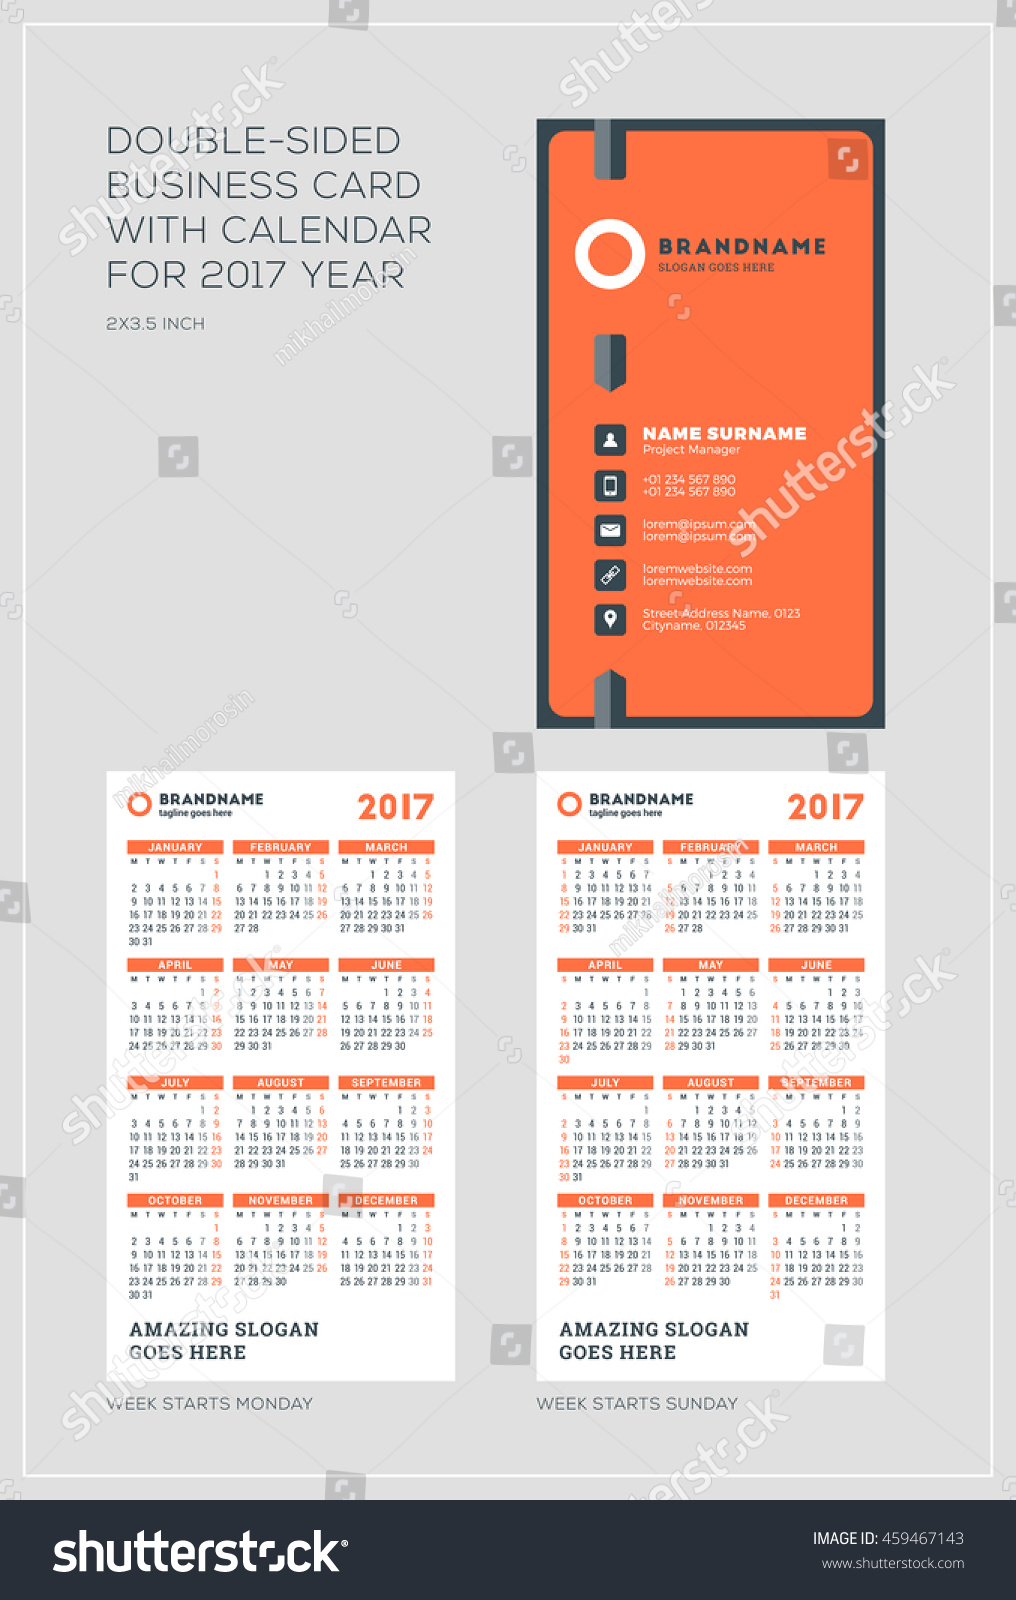 Doublesided vertical business card template calendar stock vector double sided vertical business card template with calendar for 2017 year week starts monday magicingreecefo Image collections